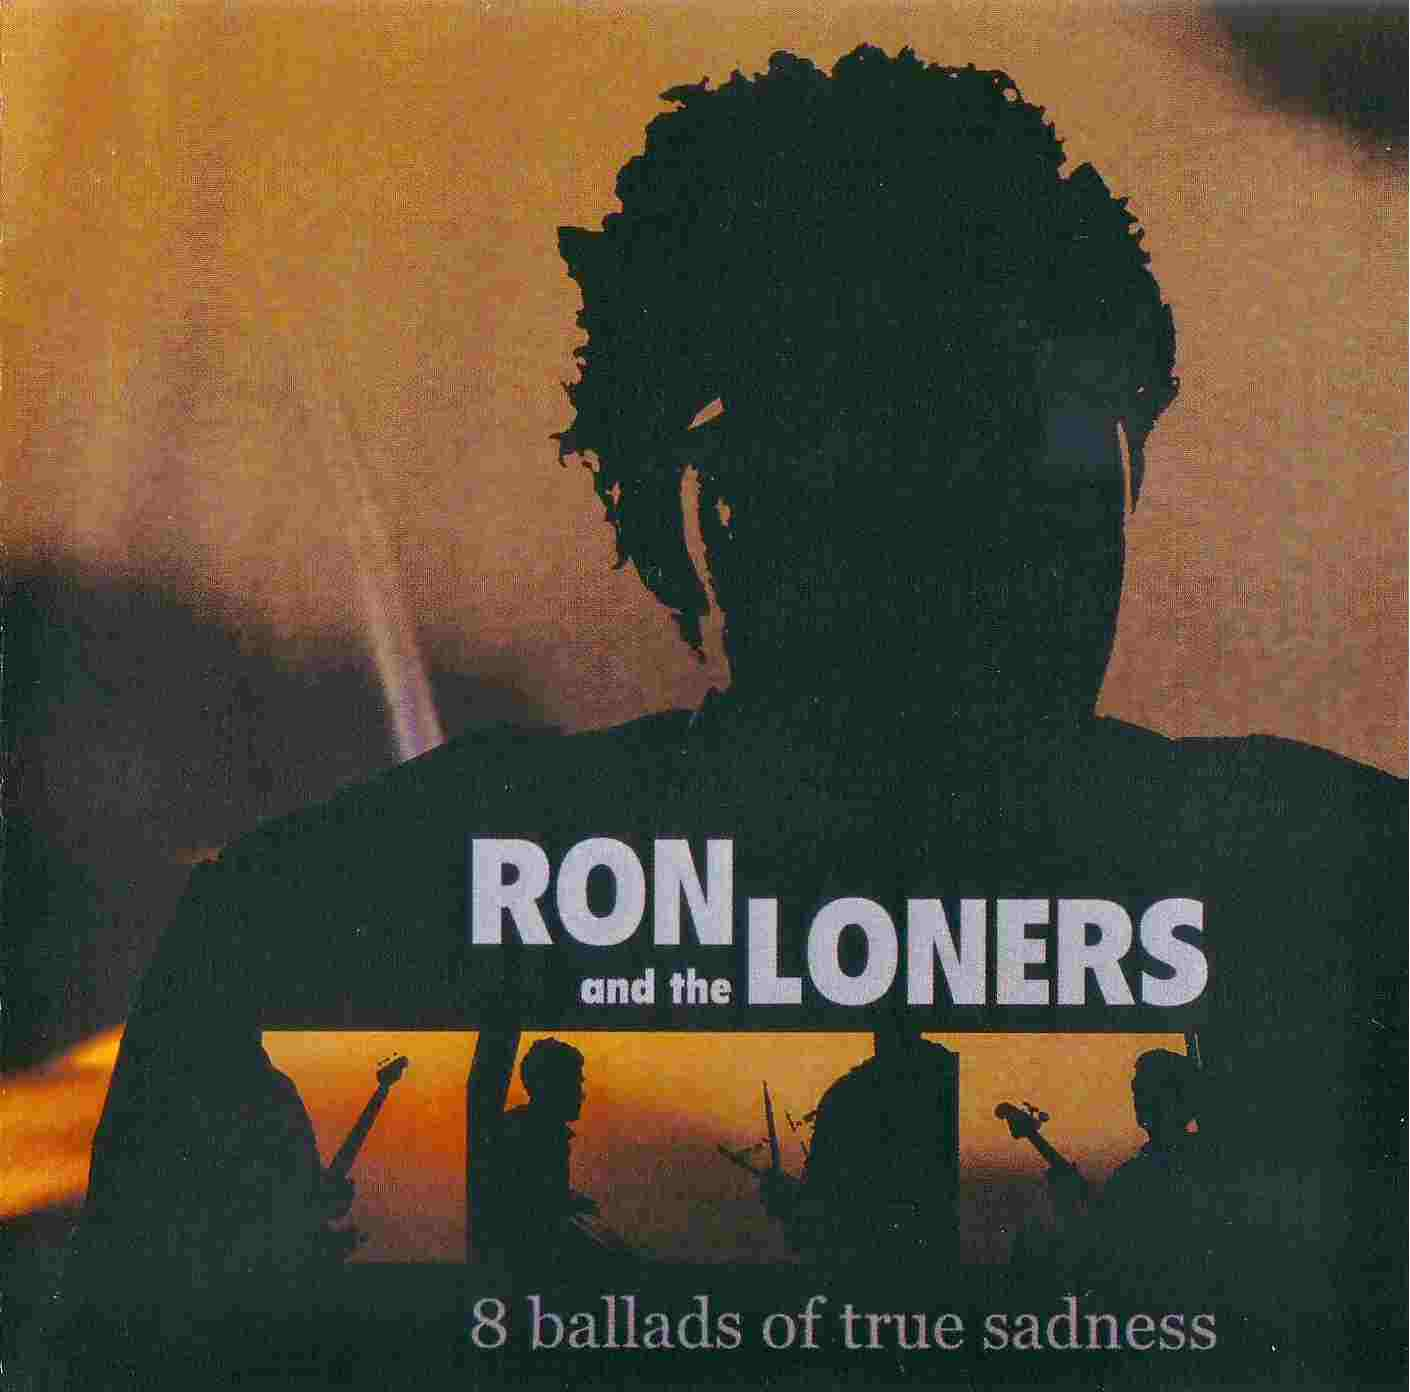 ron and the loners - 8 ballads of true sadness